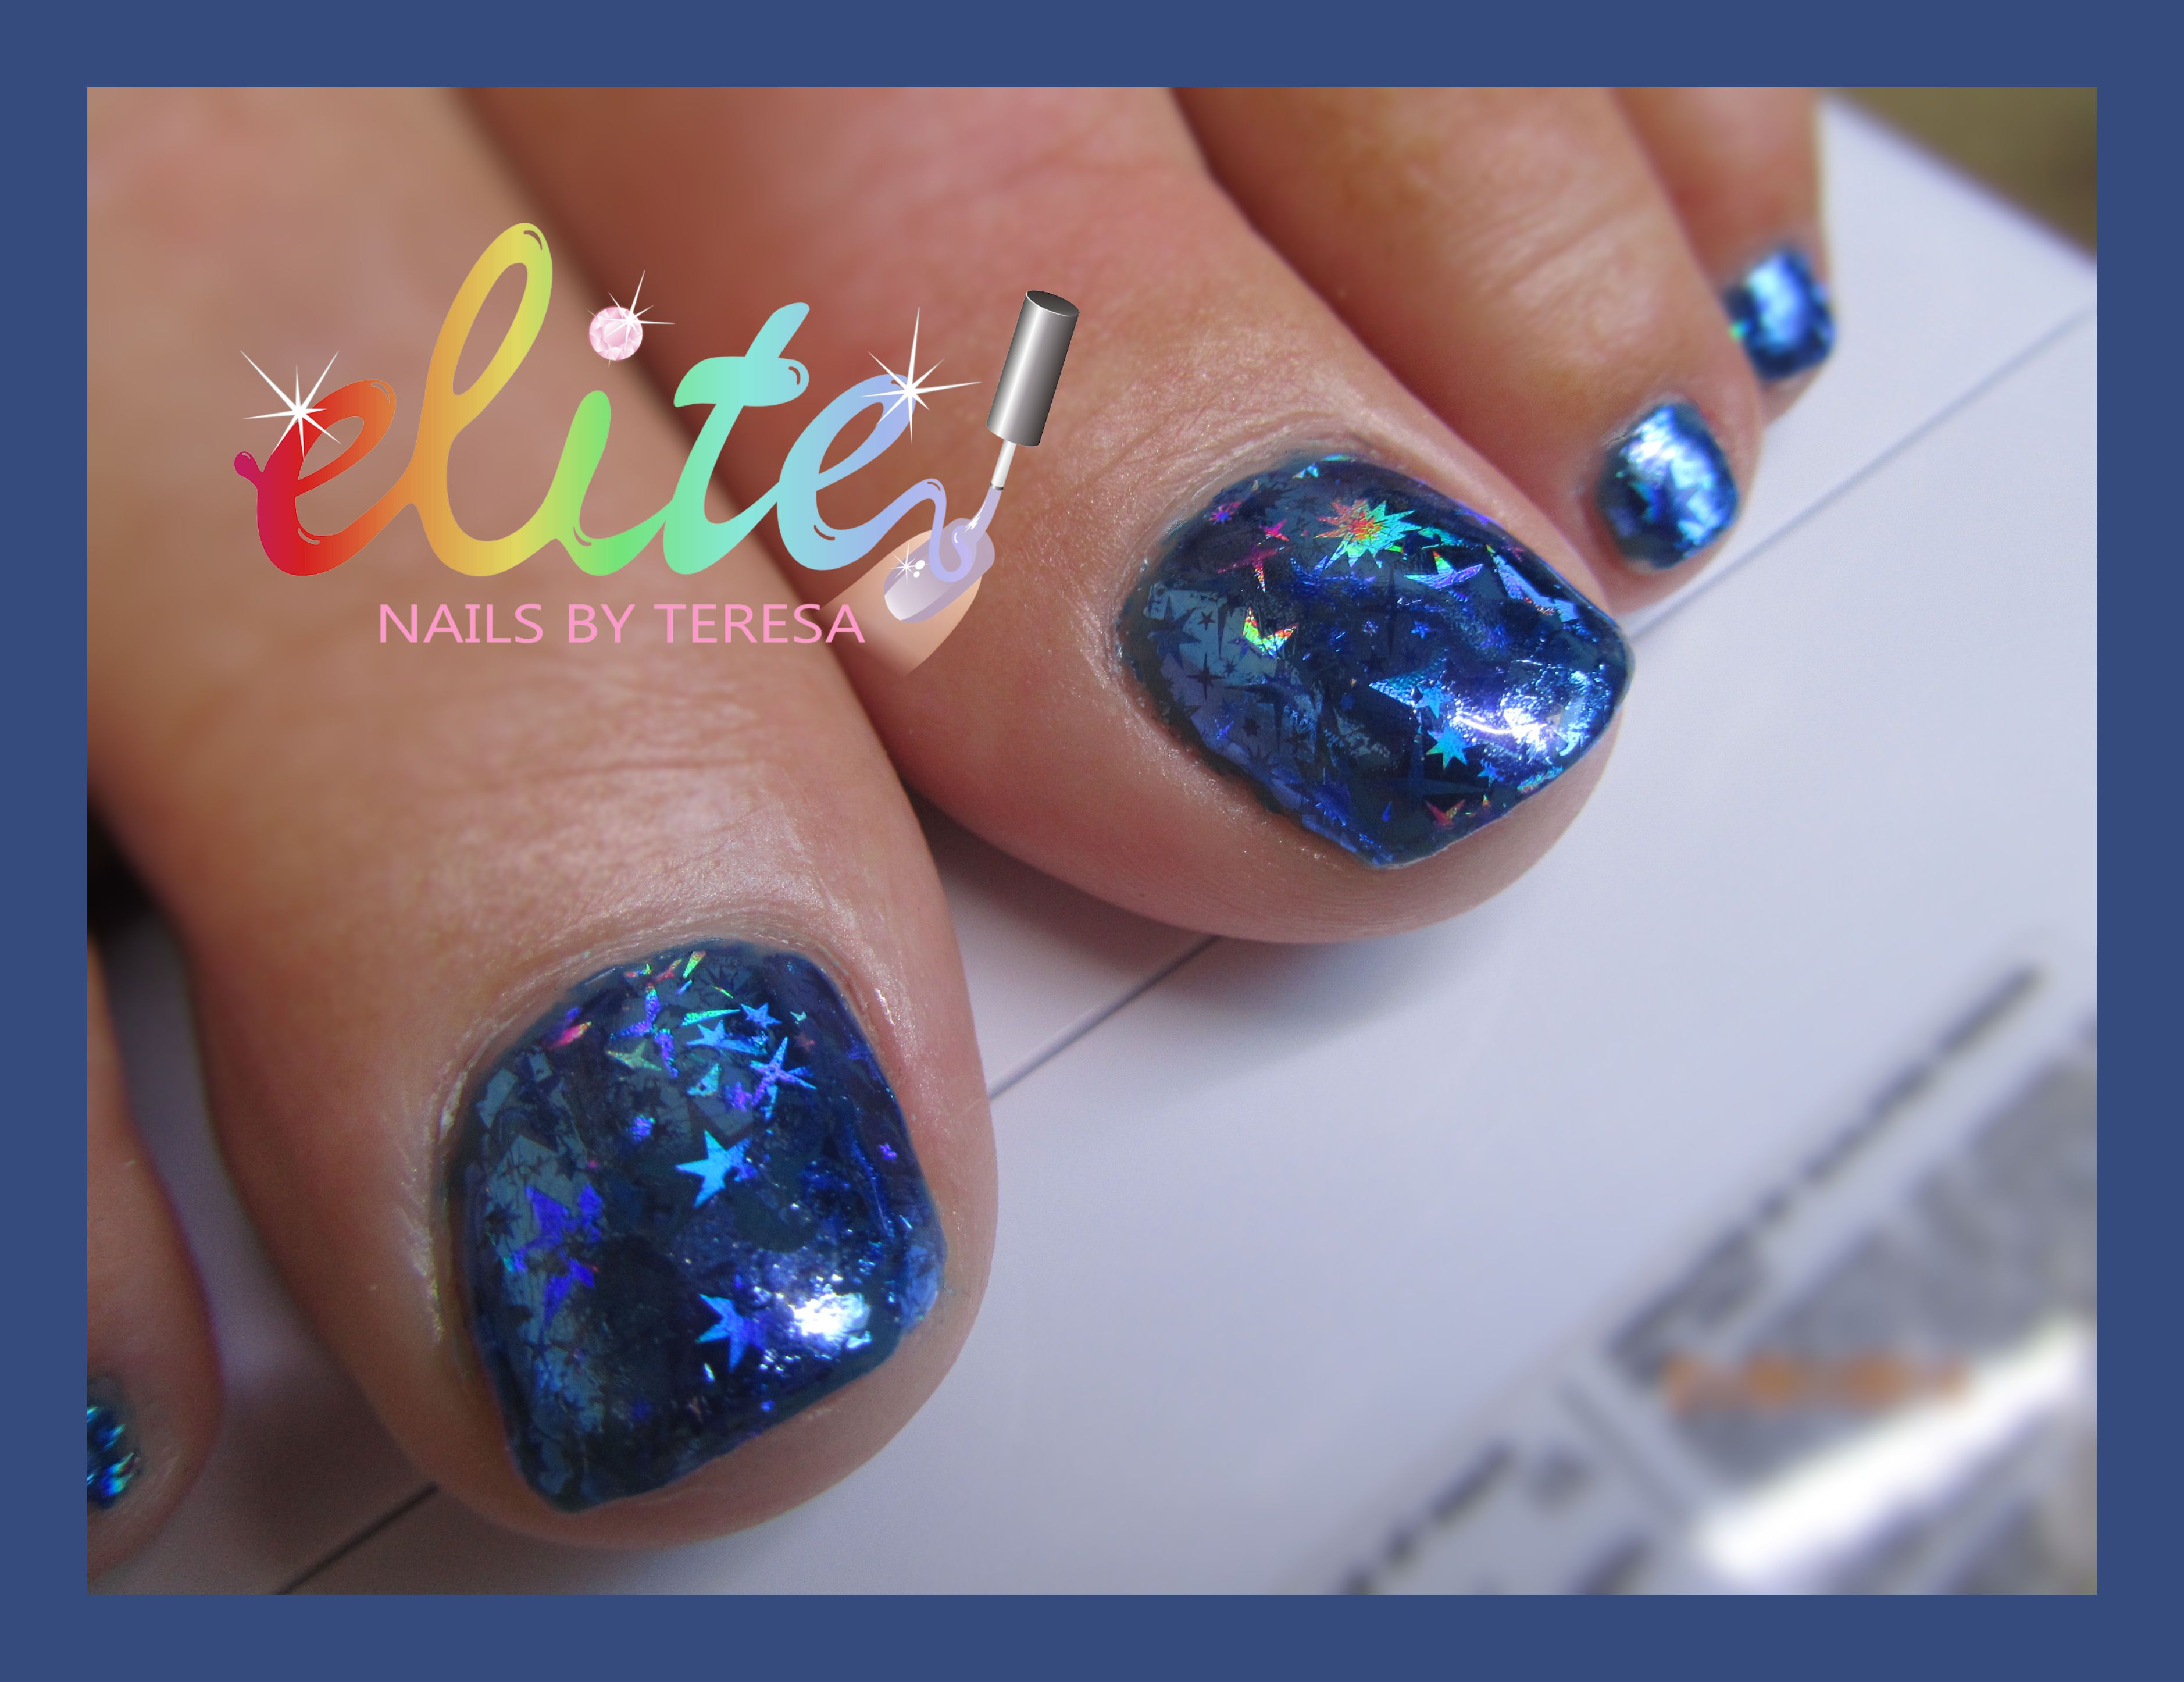 Blue foil cnd shellac toes stars gel polish nail art pedicure blue foil cnd shellac toes stars gel polish nail art pedicure nails prinsesfo Image collections